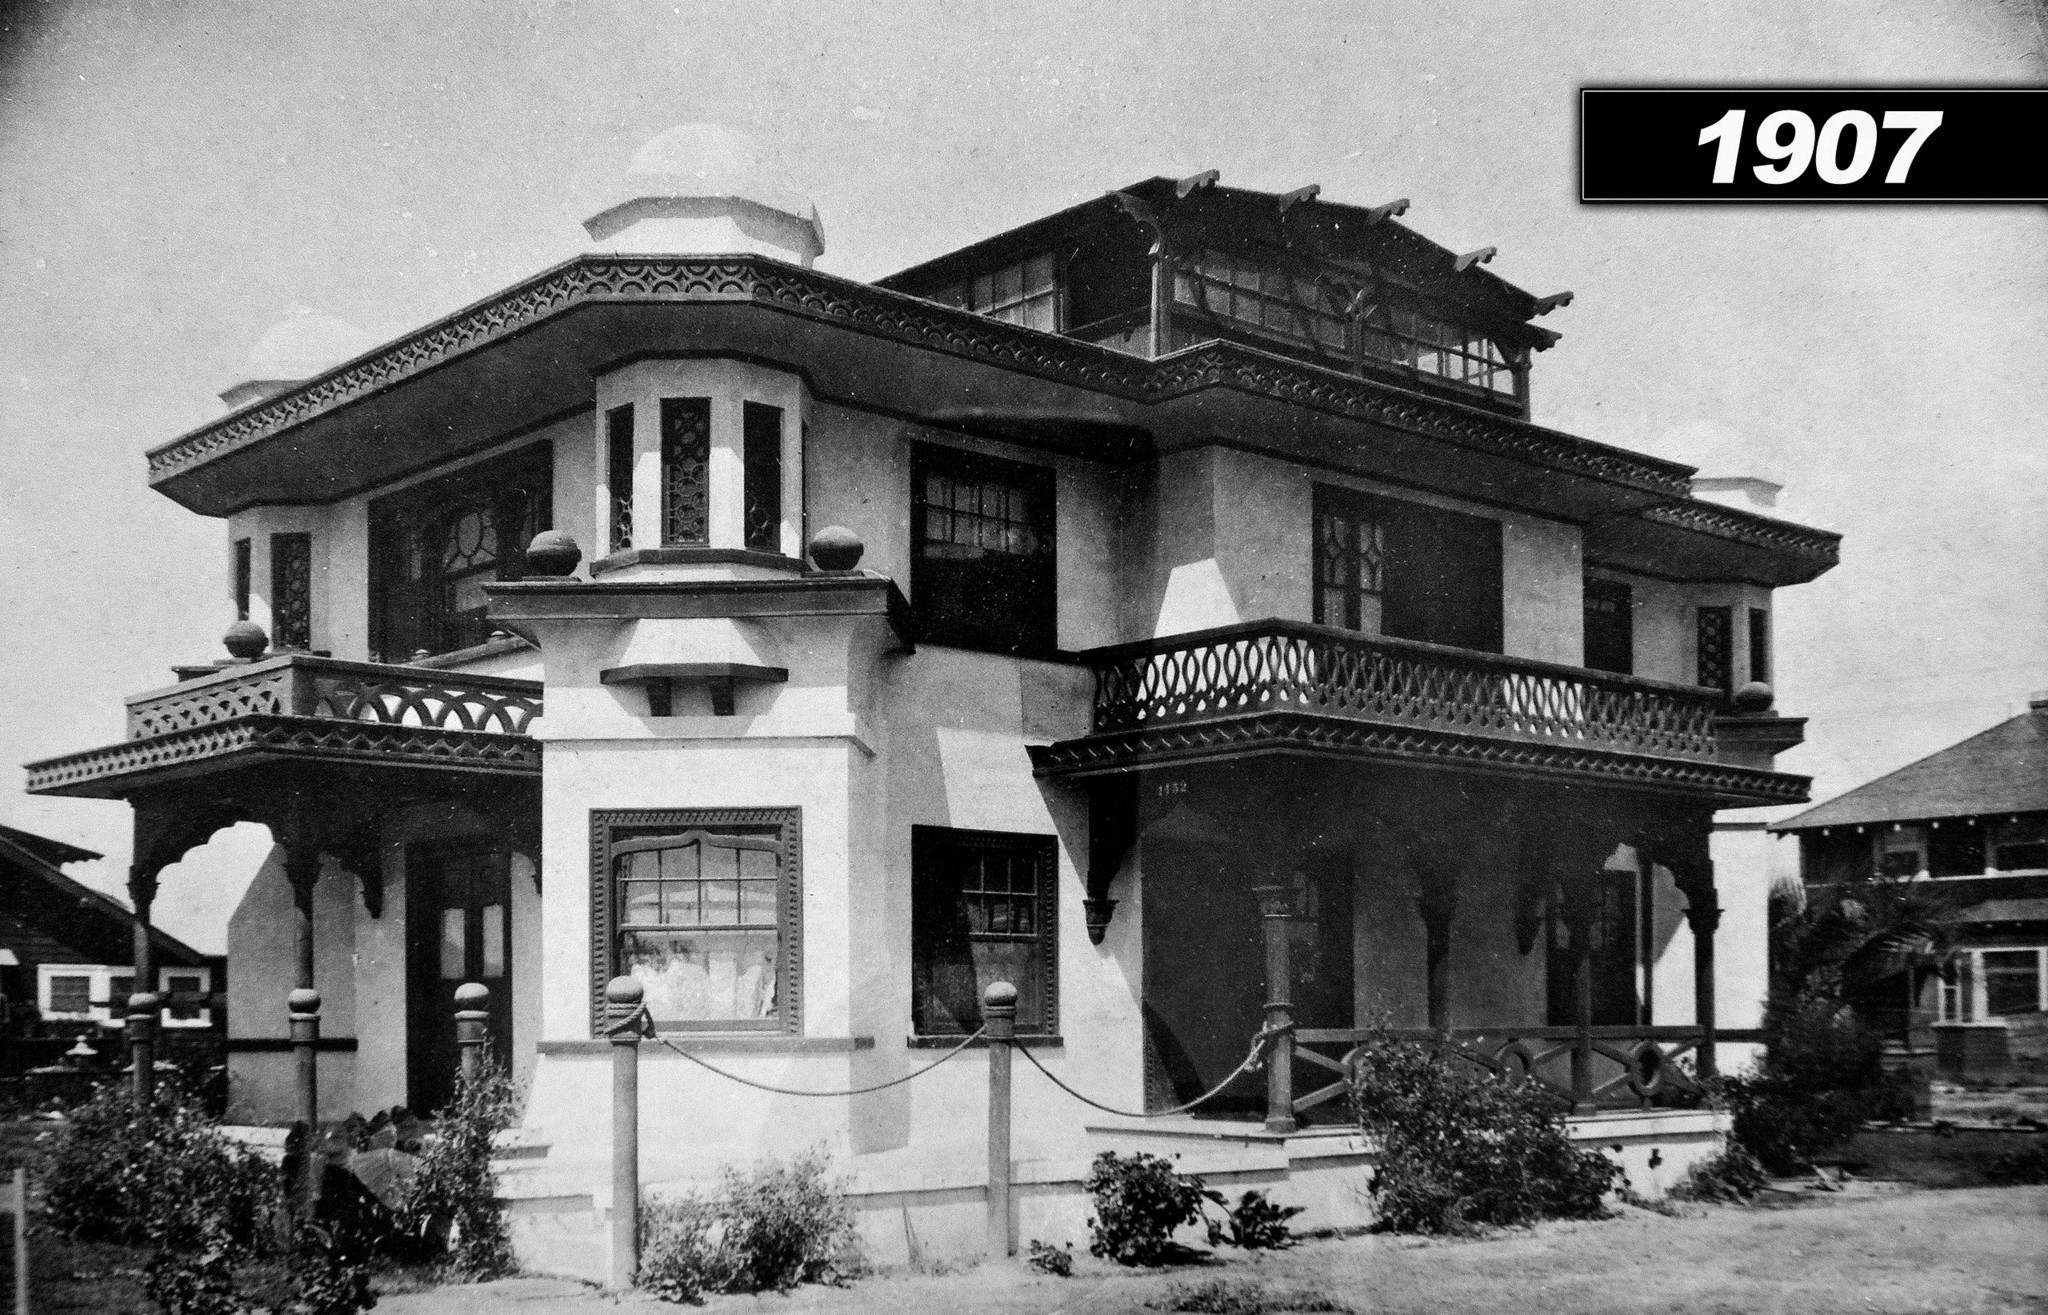 The two-family Venice property, built in 1905, is an example of the Islamic-Byzantine architectural